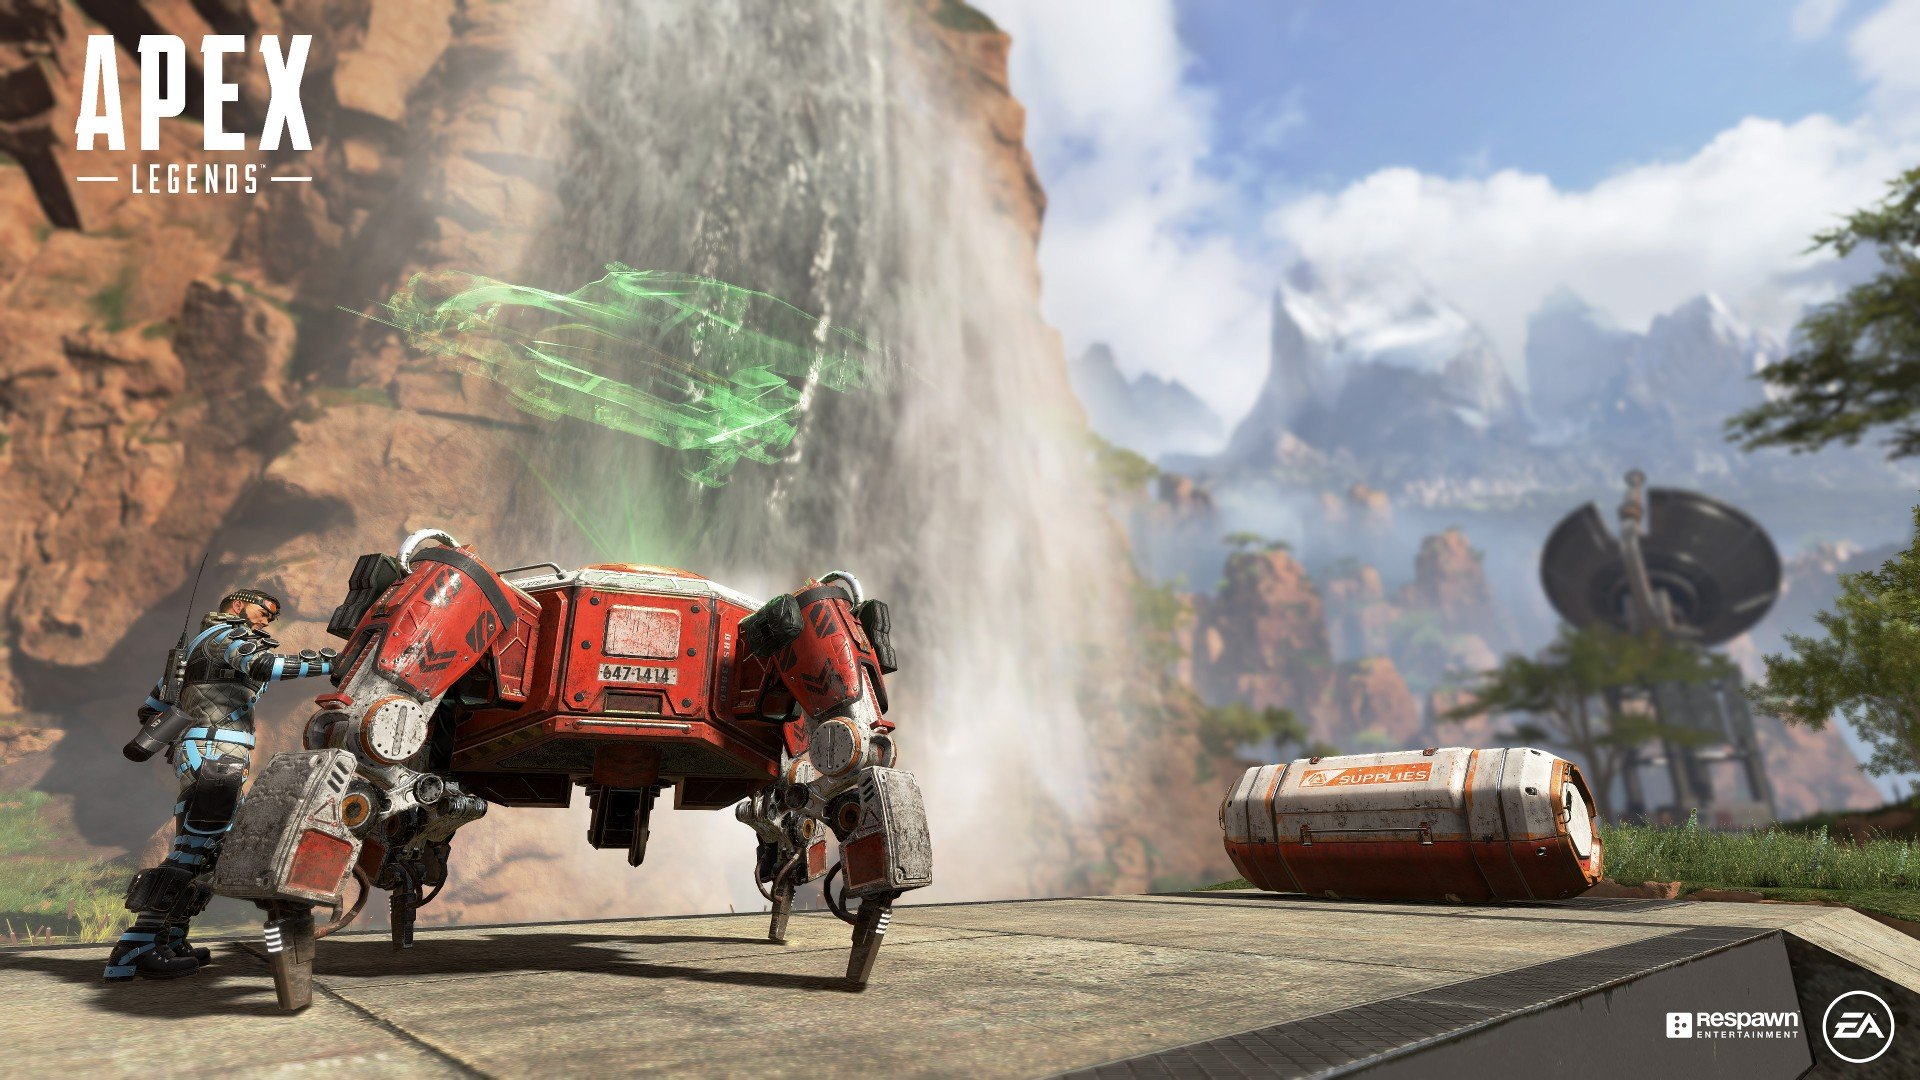 Cross-platform support will be added to Apex Legends later on, and Respawn Entertainment could potentially release the game to mobile and Nintendo Switch platforms.